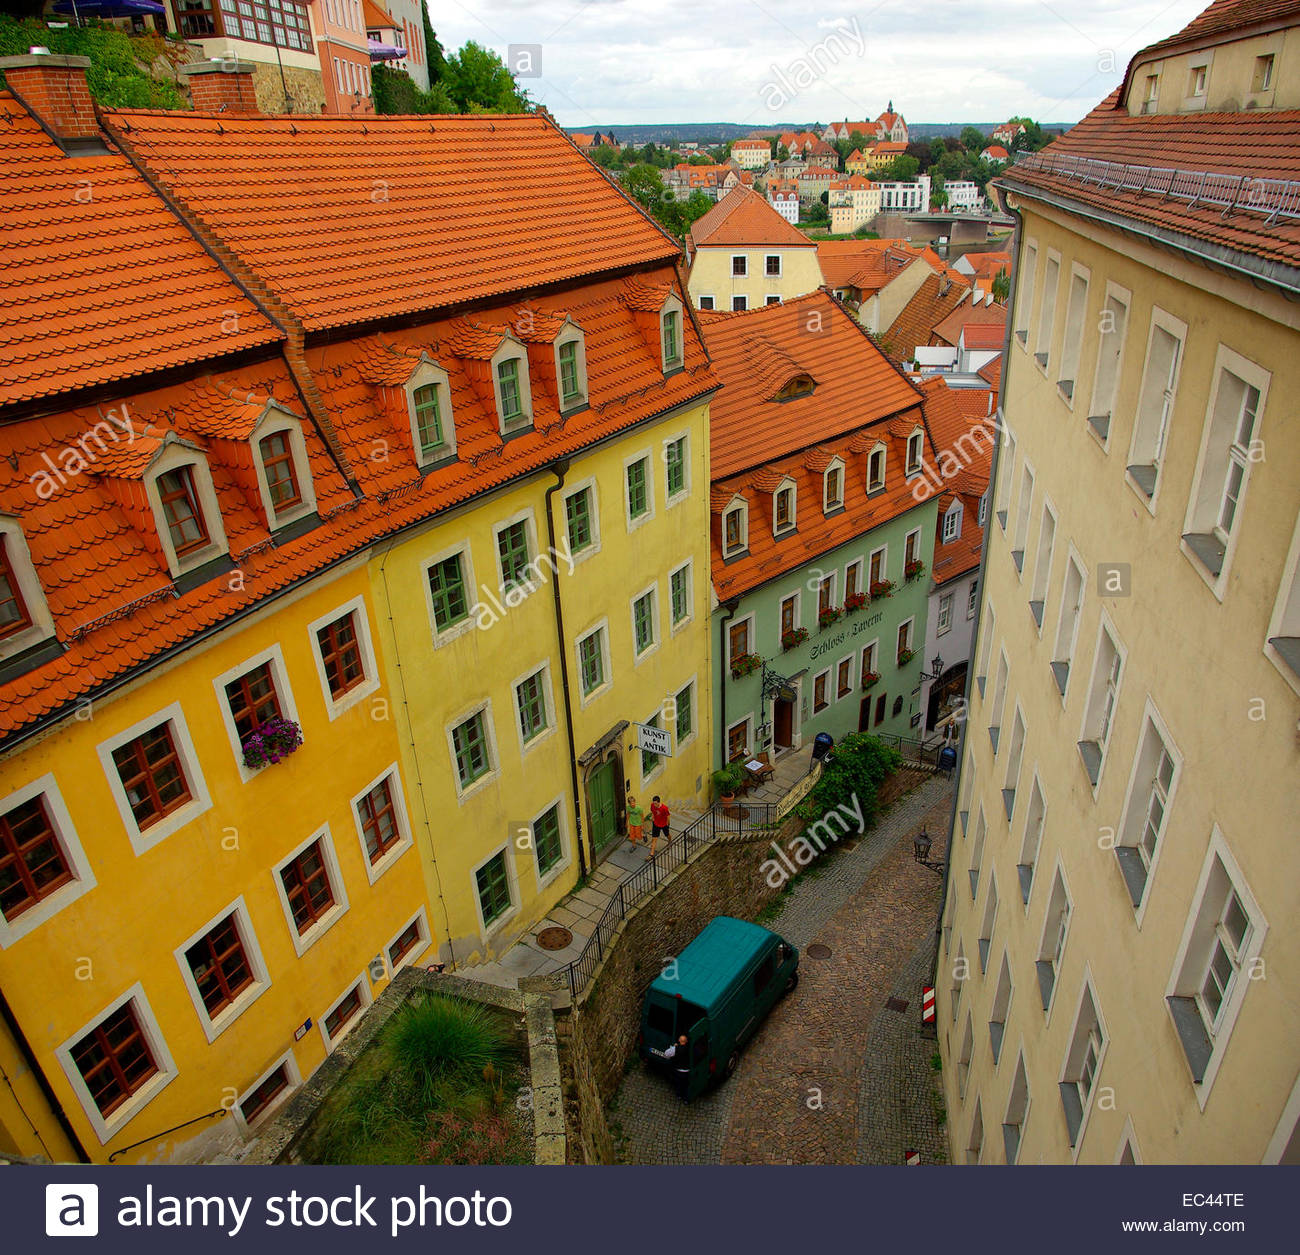 Old town of Meissen, Saxony, Germany, Europe, as seen as from the hill of the Albrechtsburg Palace. Stock Photo